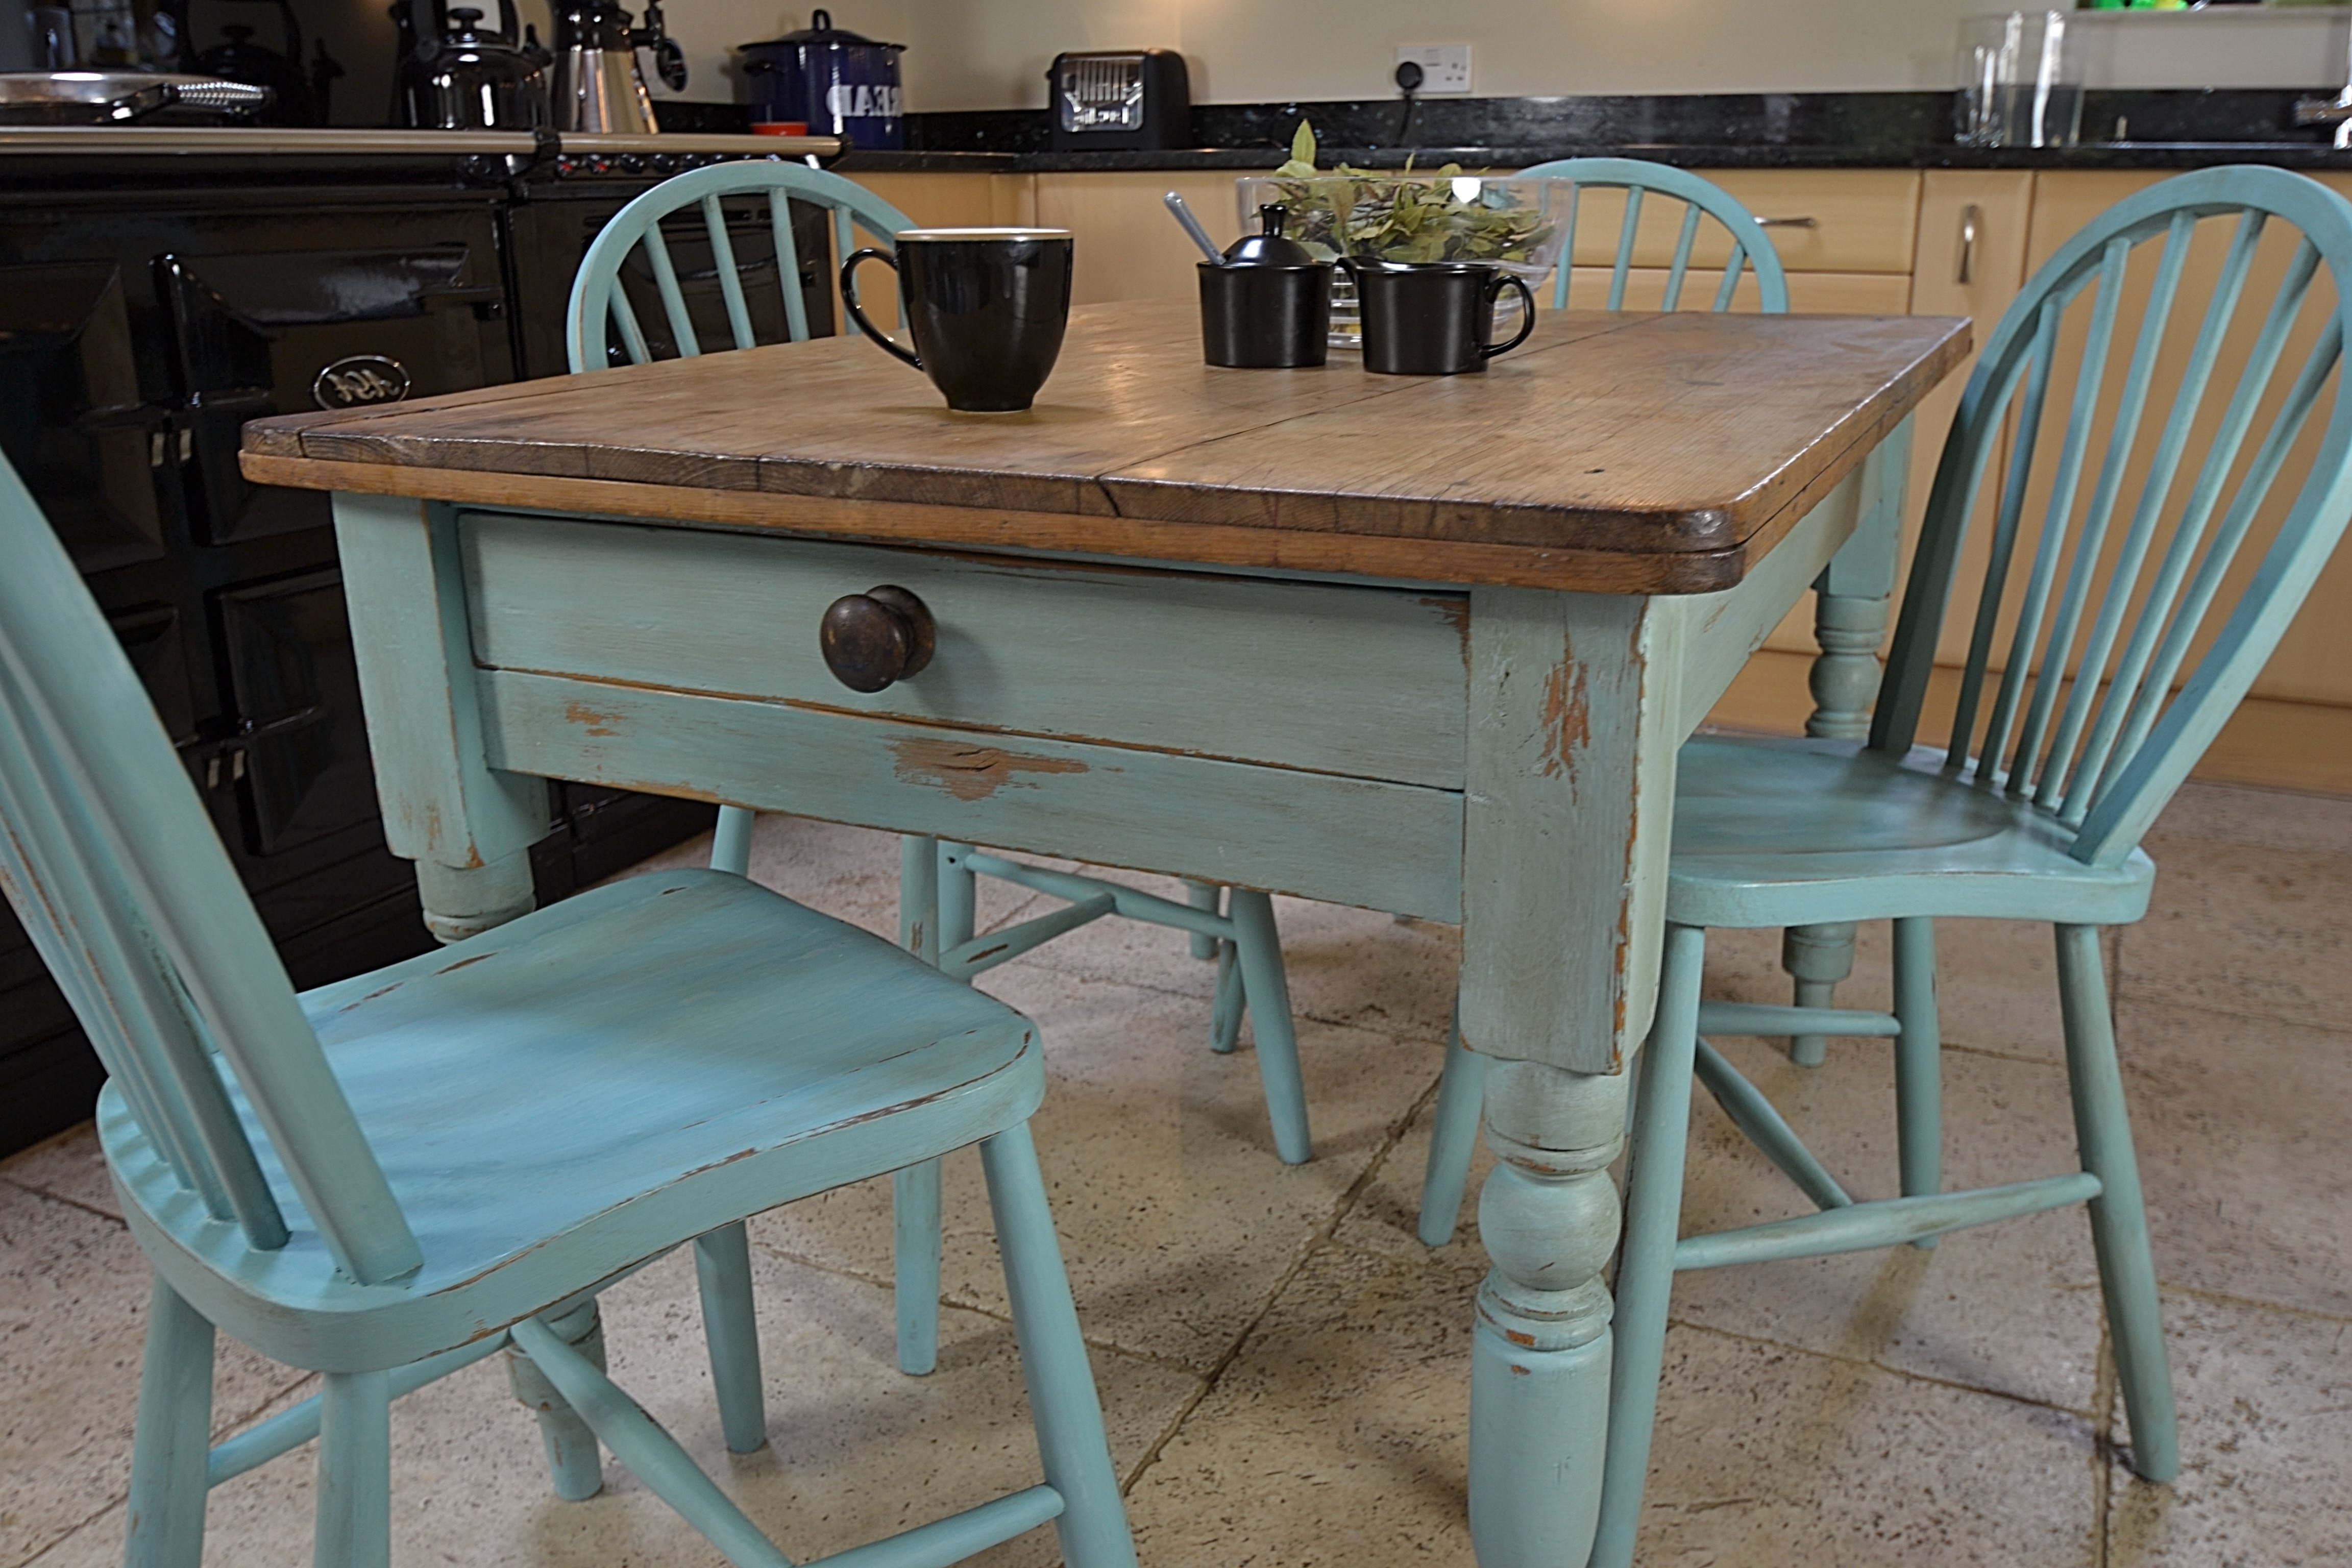 Rustic Small Square Distressed Dining Table With Drawer And Light Intended For Most Recent Blue Dining Tables (View 10 of 25)